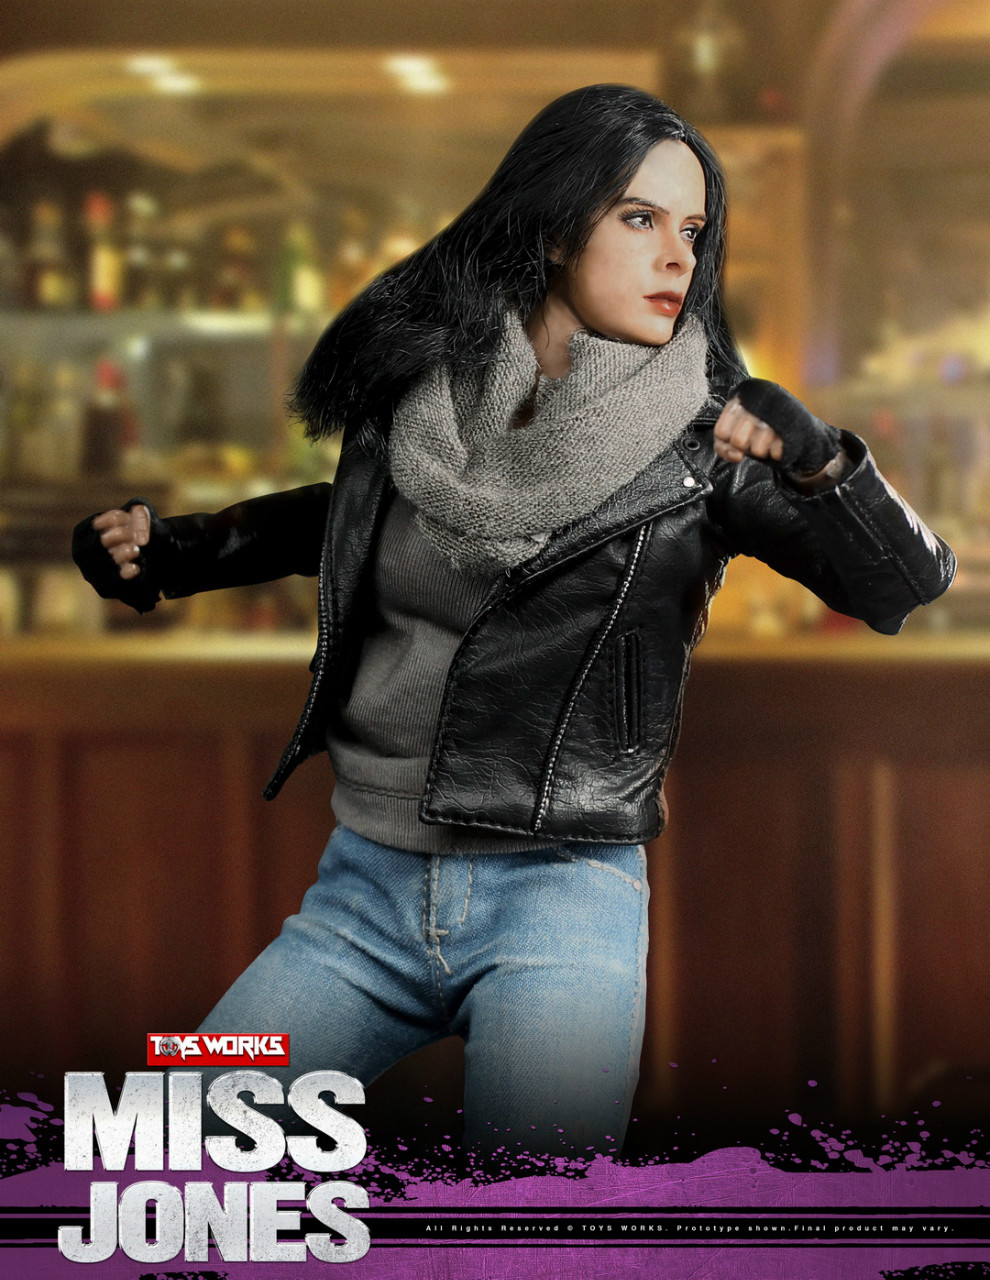 tv - NEW PRODUCT: TOYS WORKS New: 1/6 Miss Jones Miss Jones can move TW007 19163614